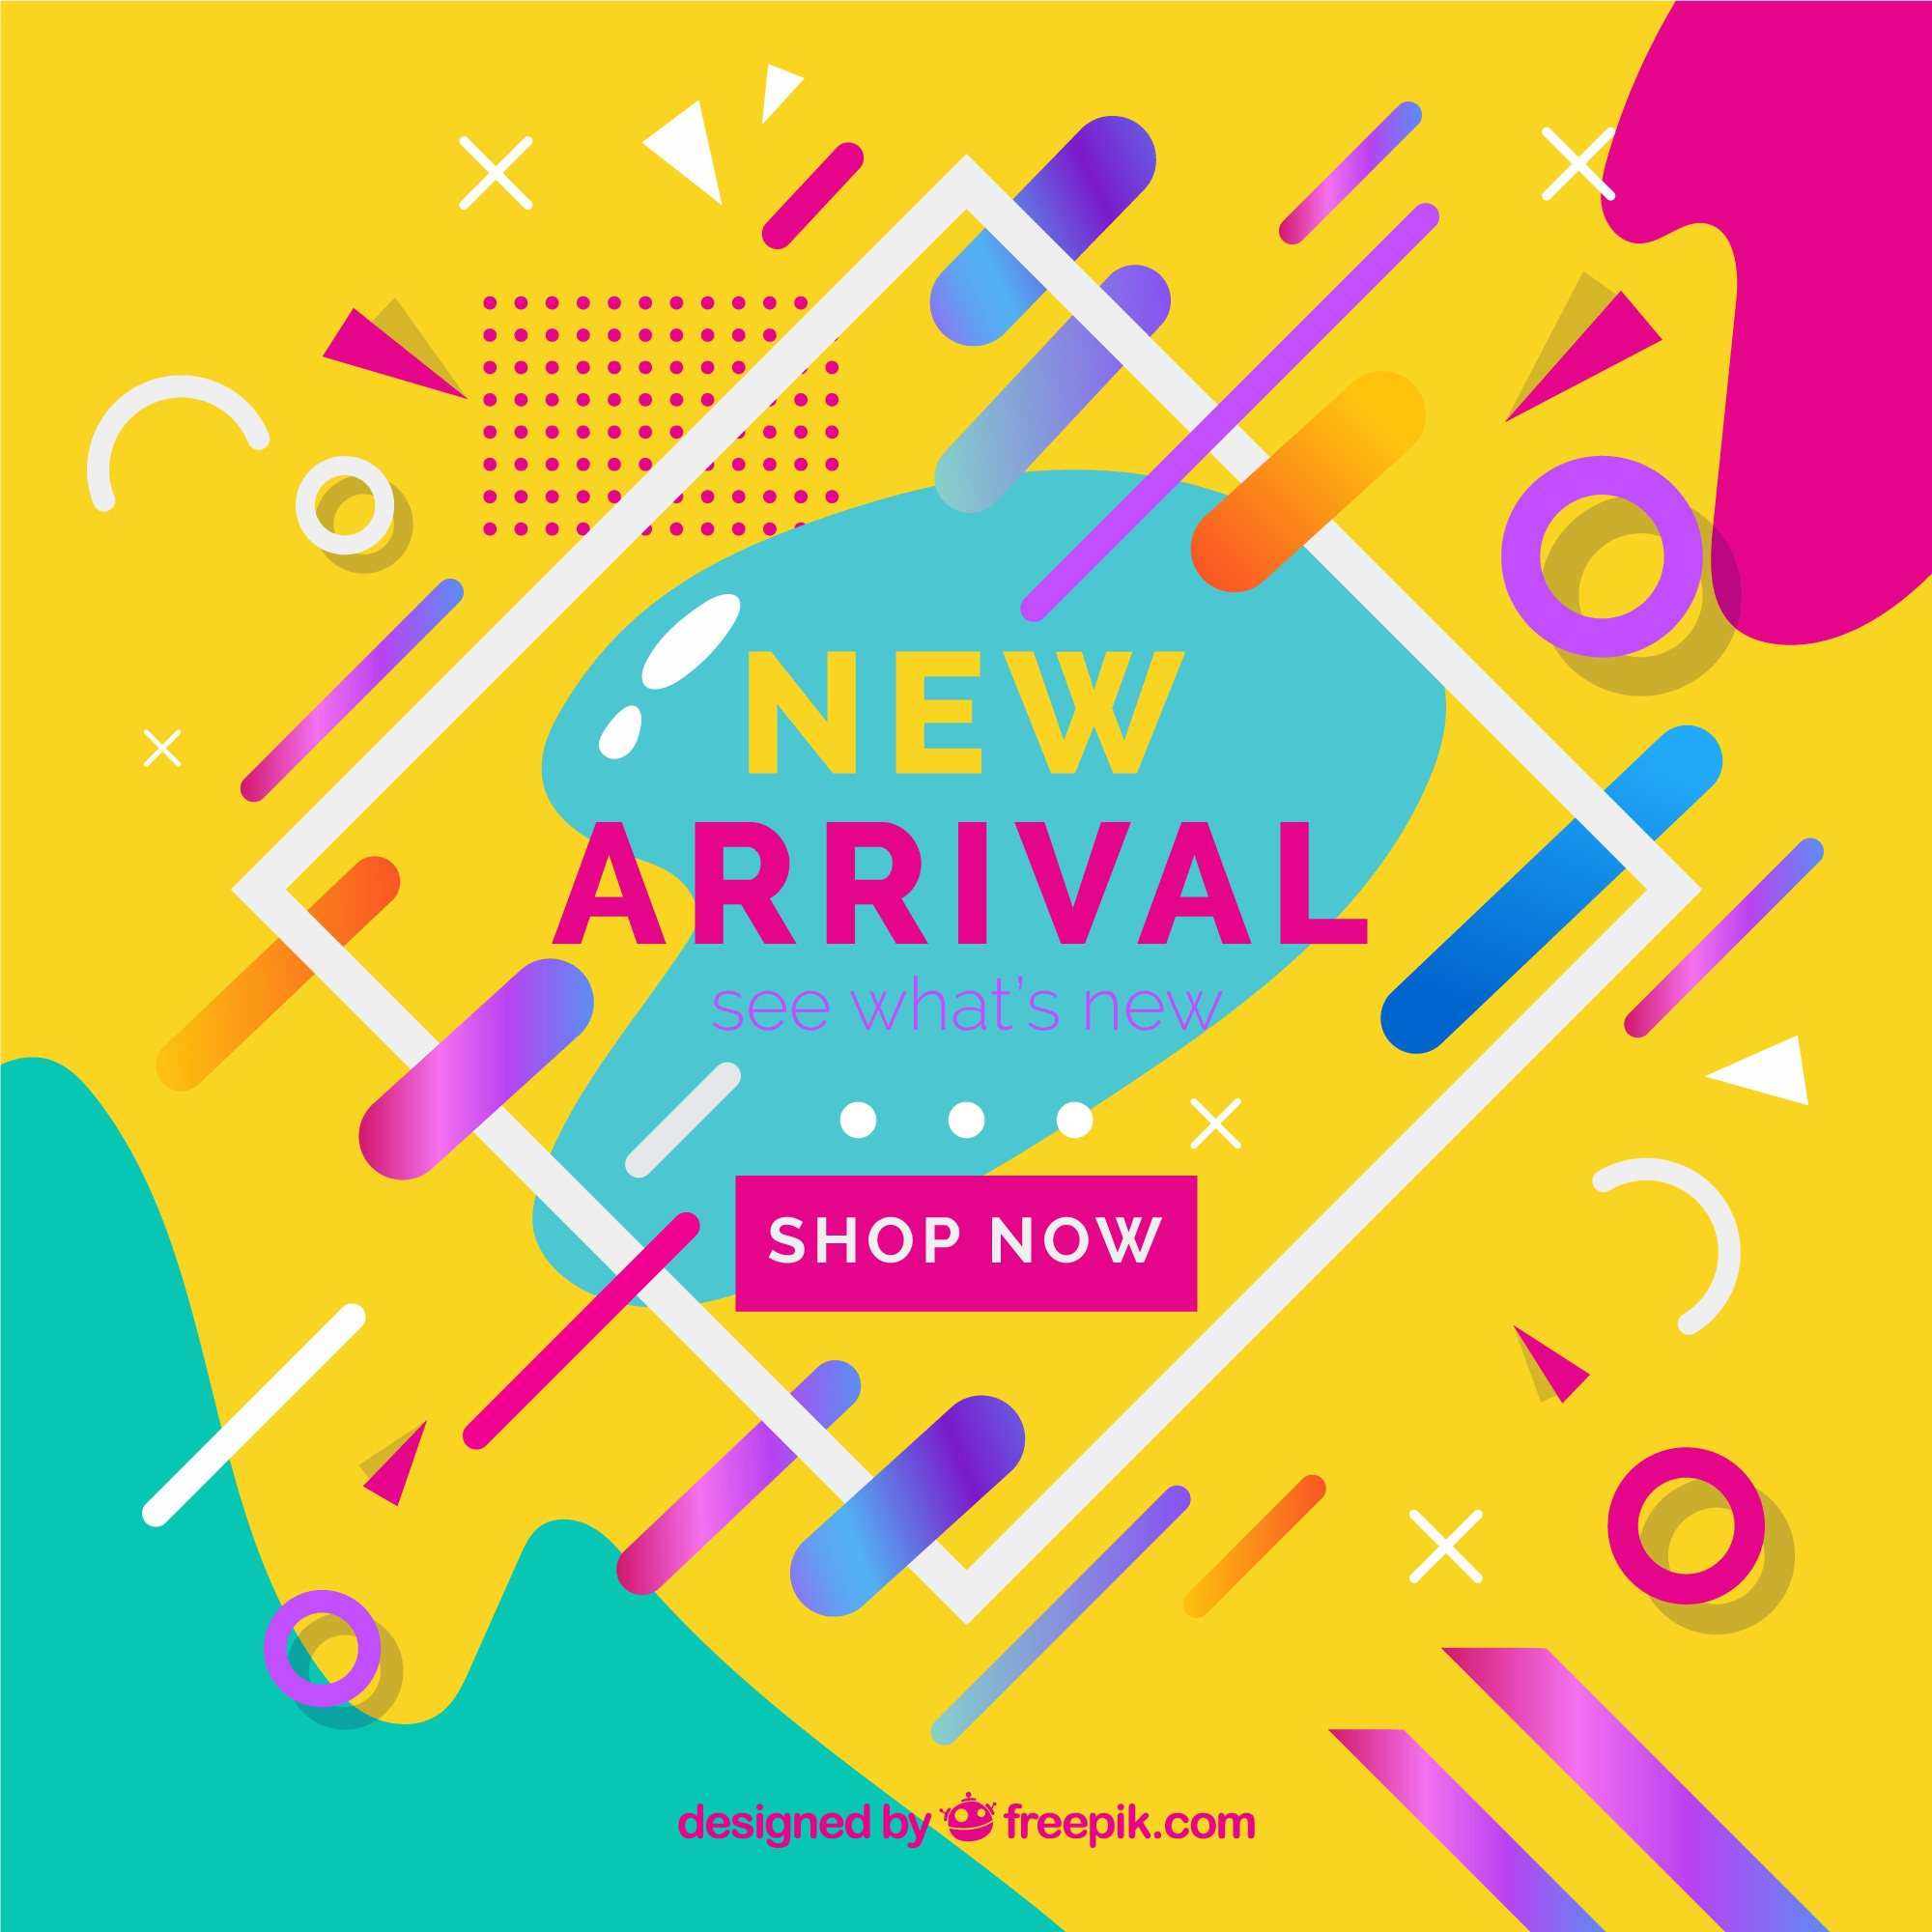 New arrival with colorful background